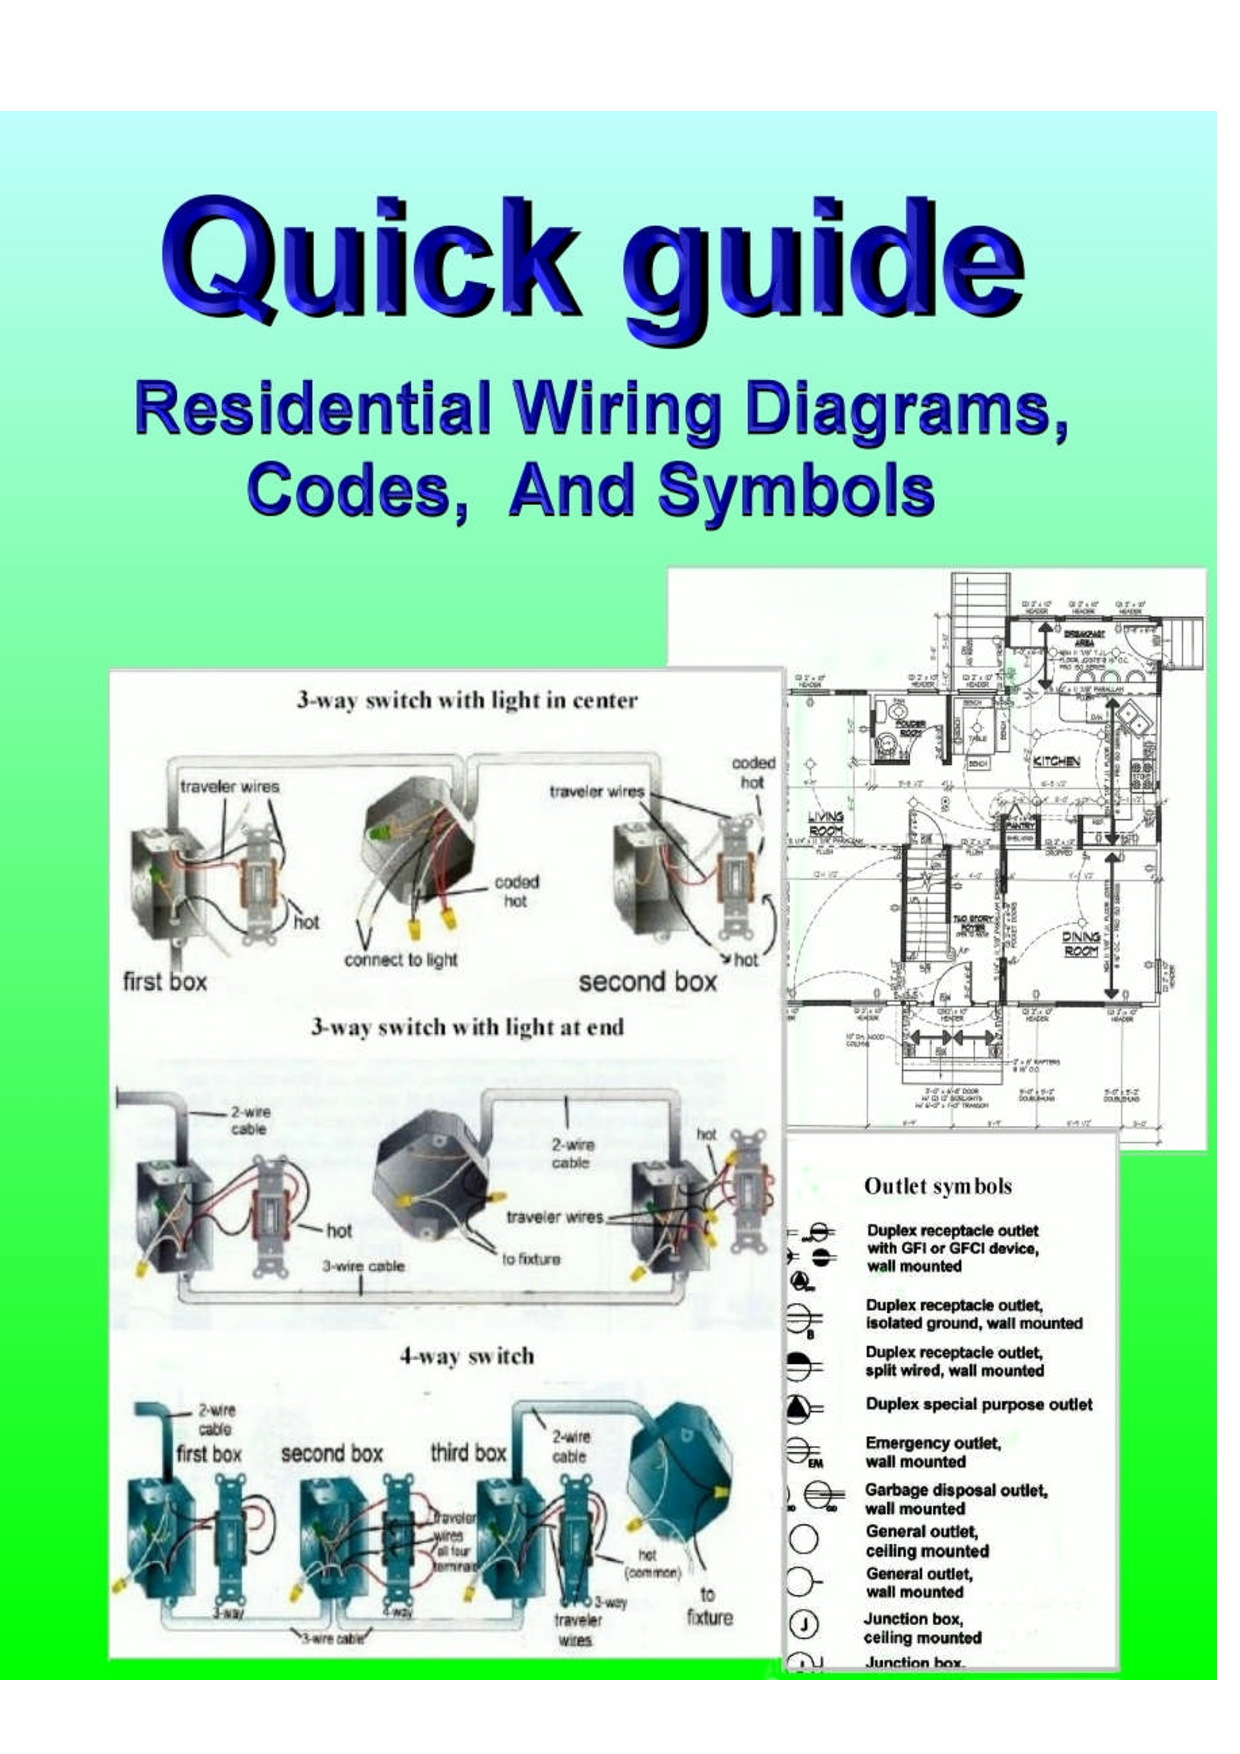 home electrical wiring diagrams pdf download legal documents 39 rh pinterest com Electrical Switch Wiring Diagram Basic Electrical Wiring Diagrams